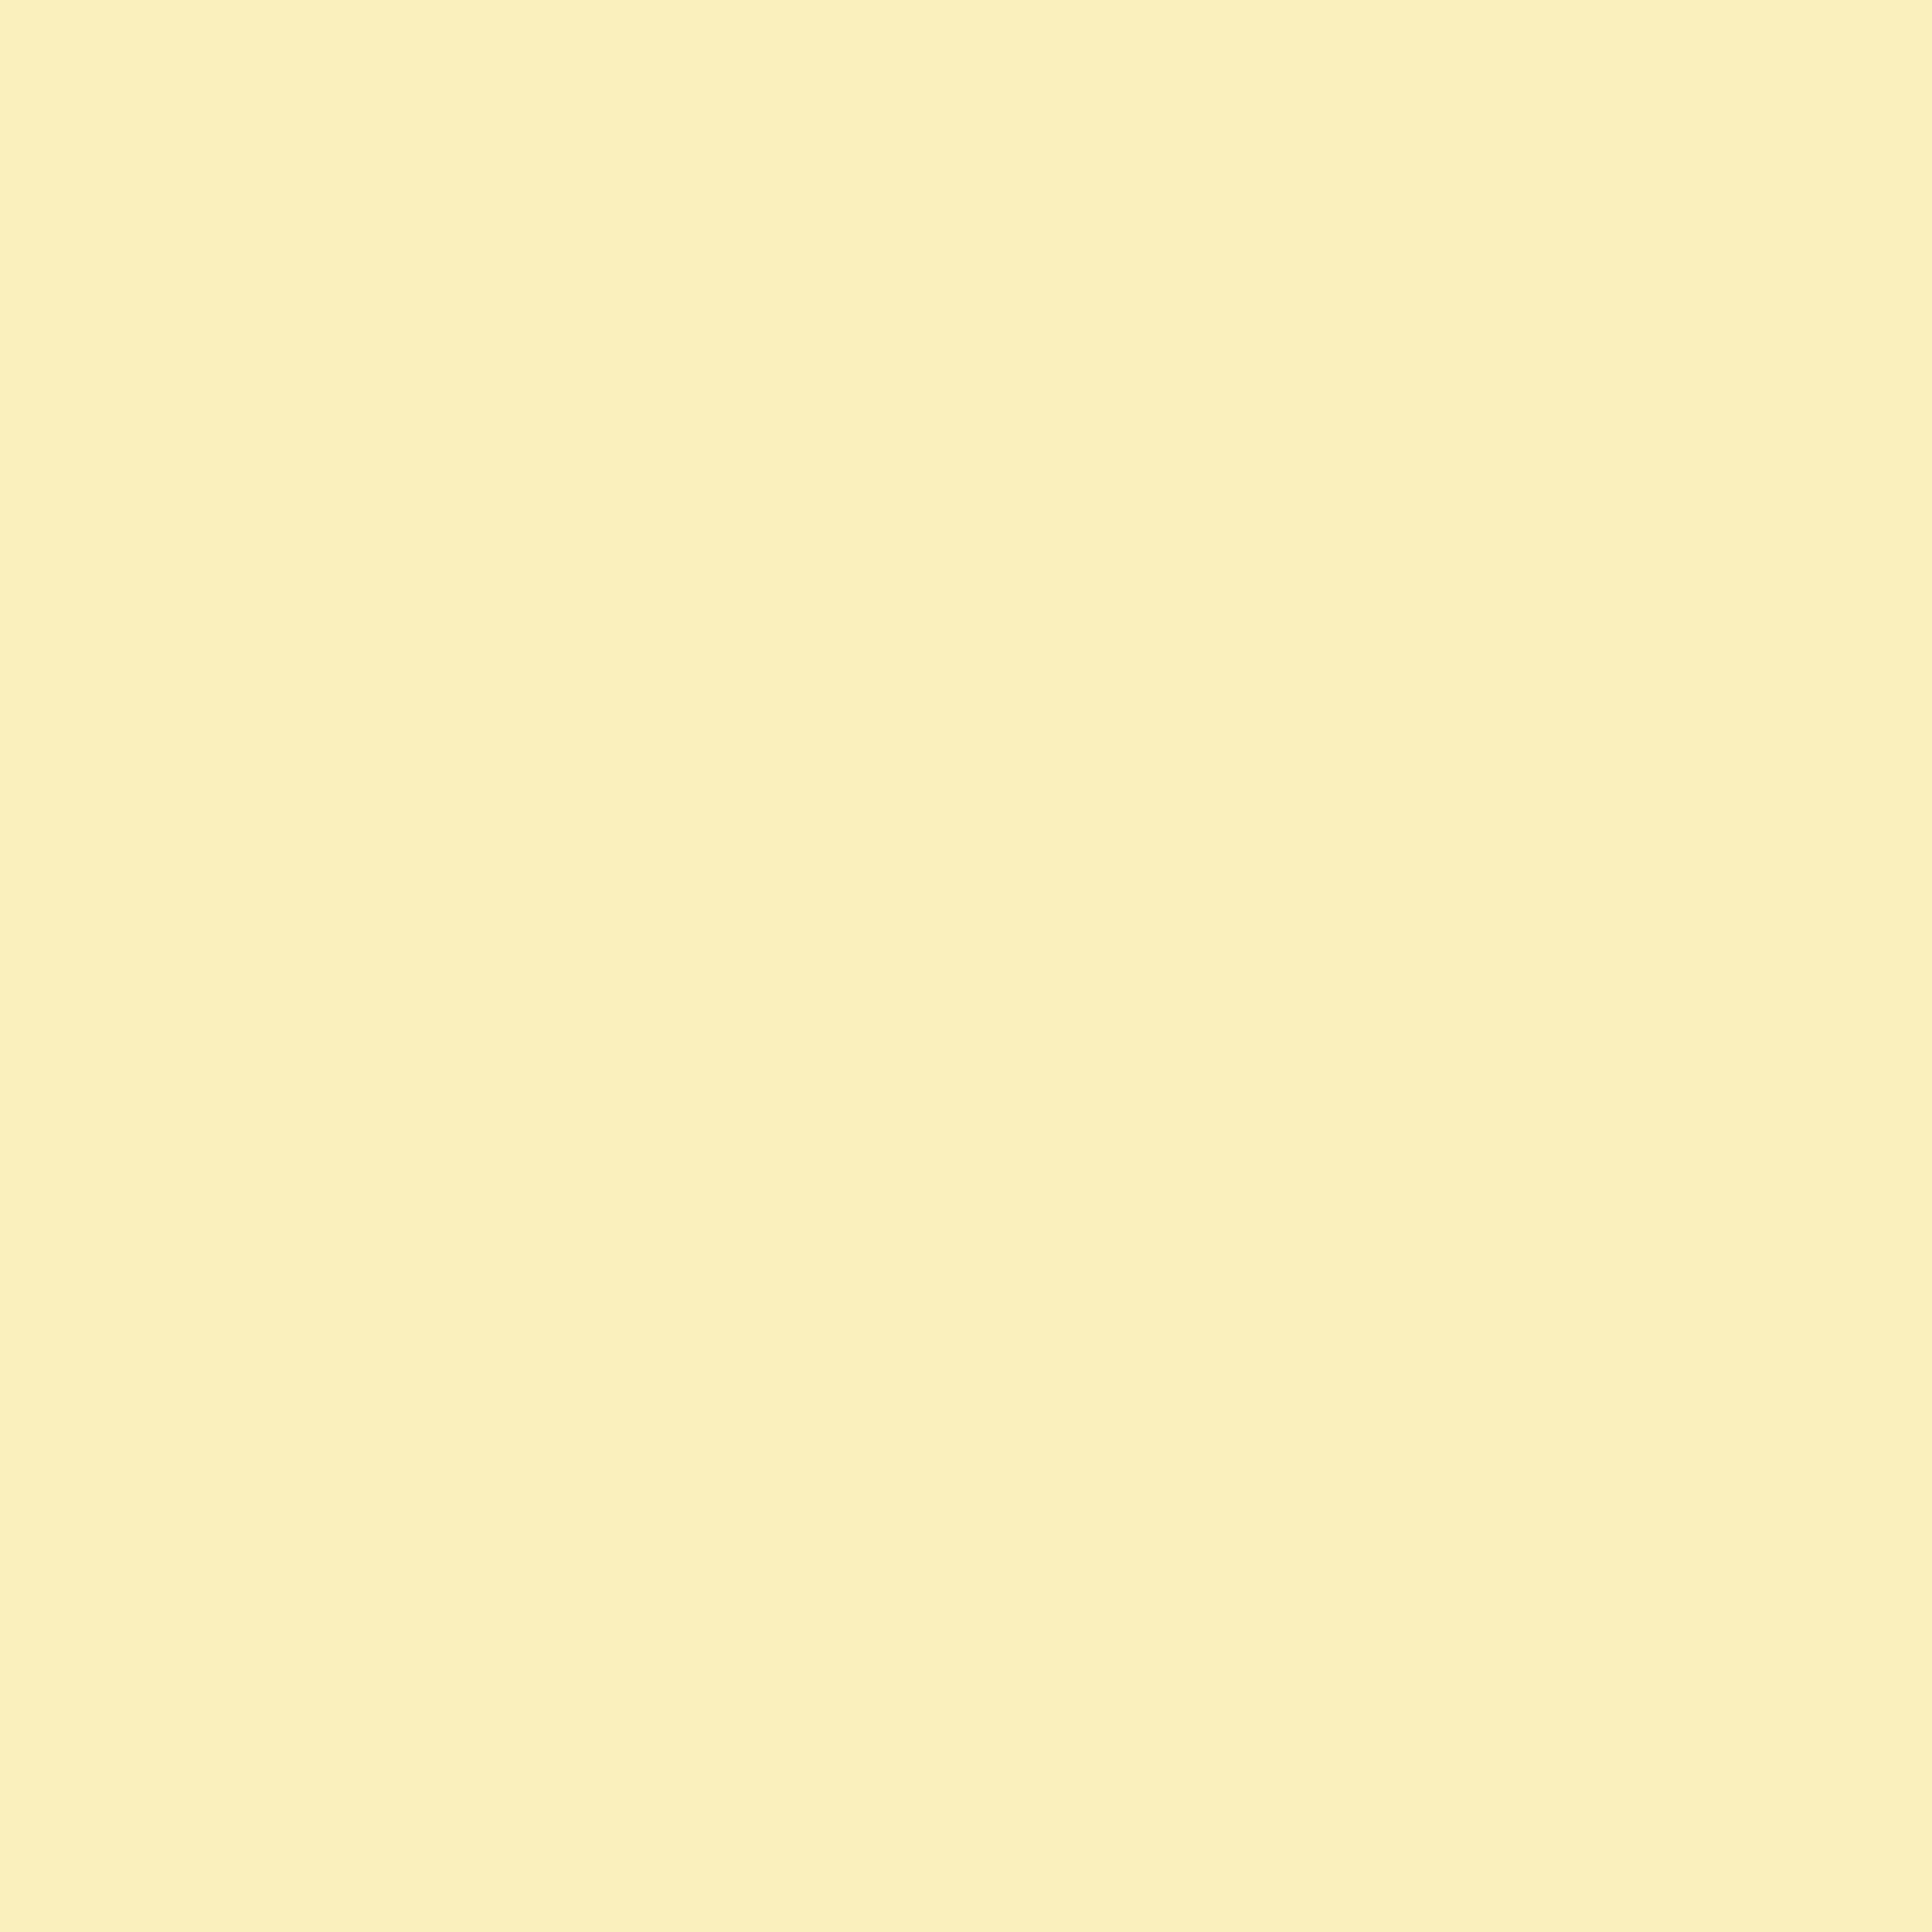 3600x3600 Blond Solid Color Background